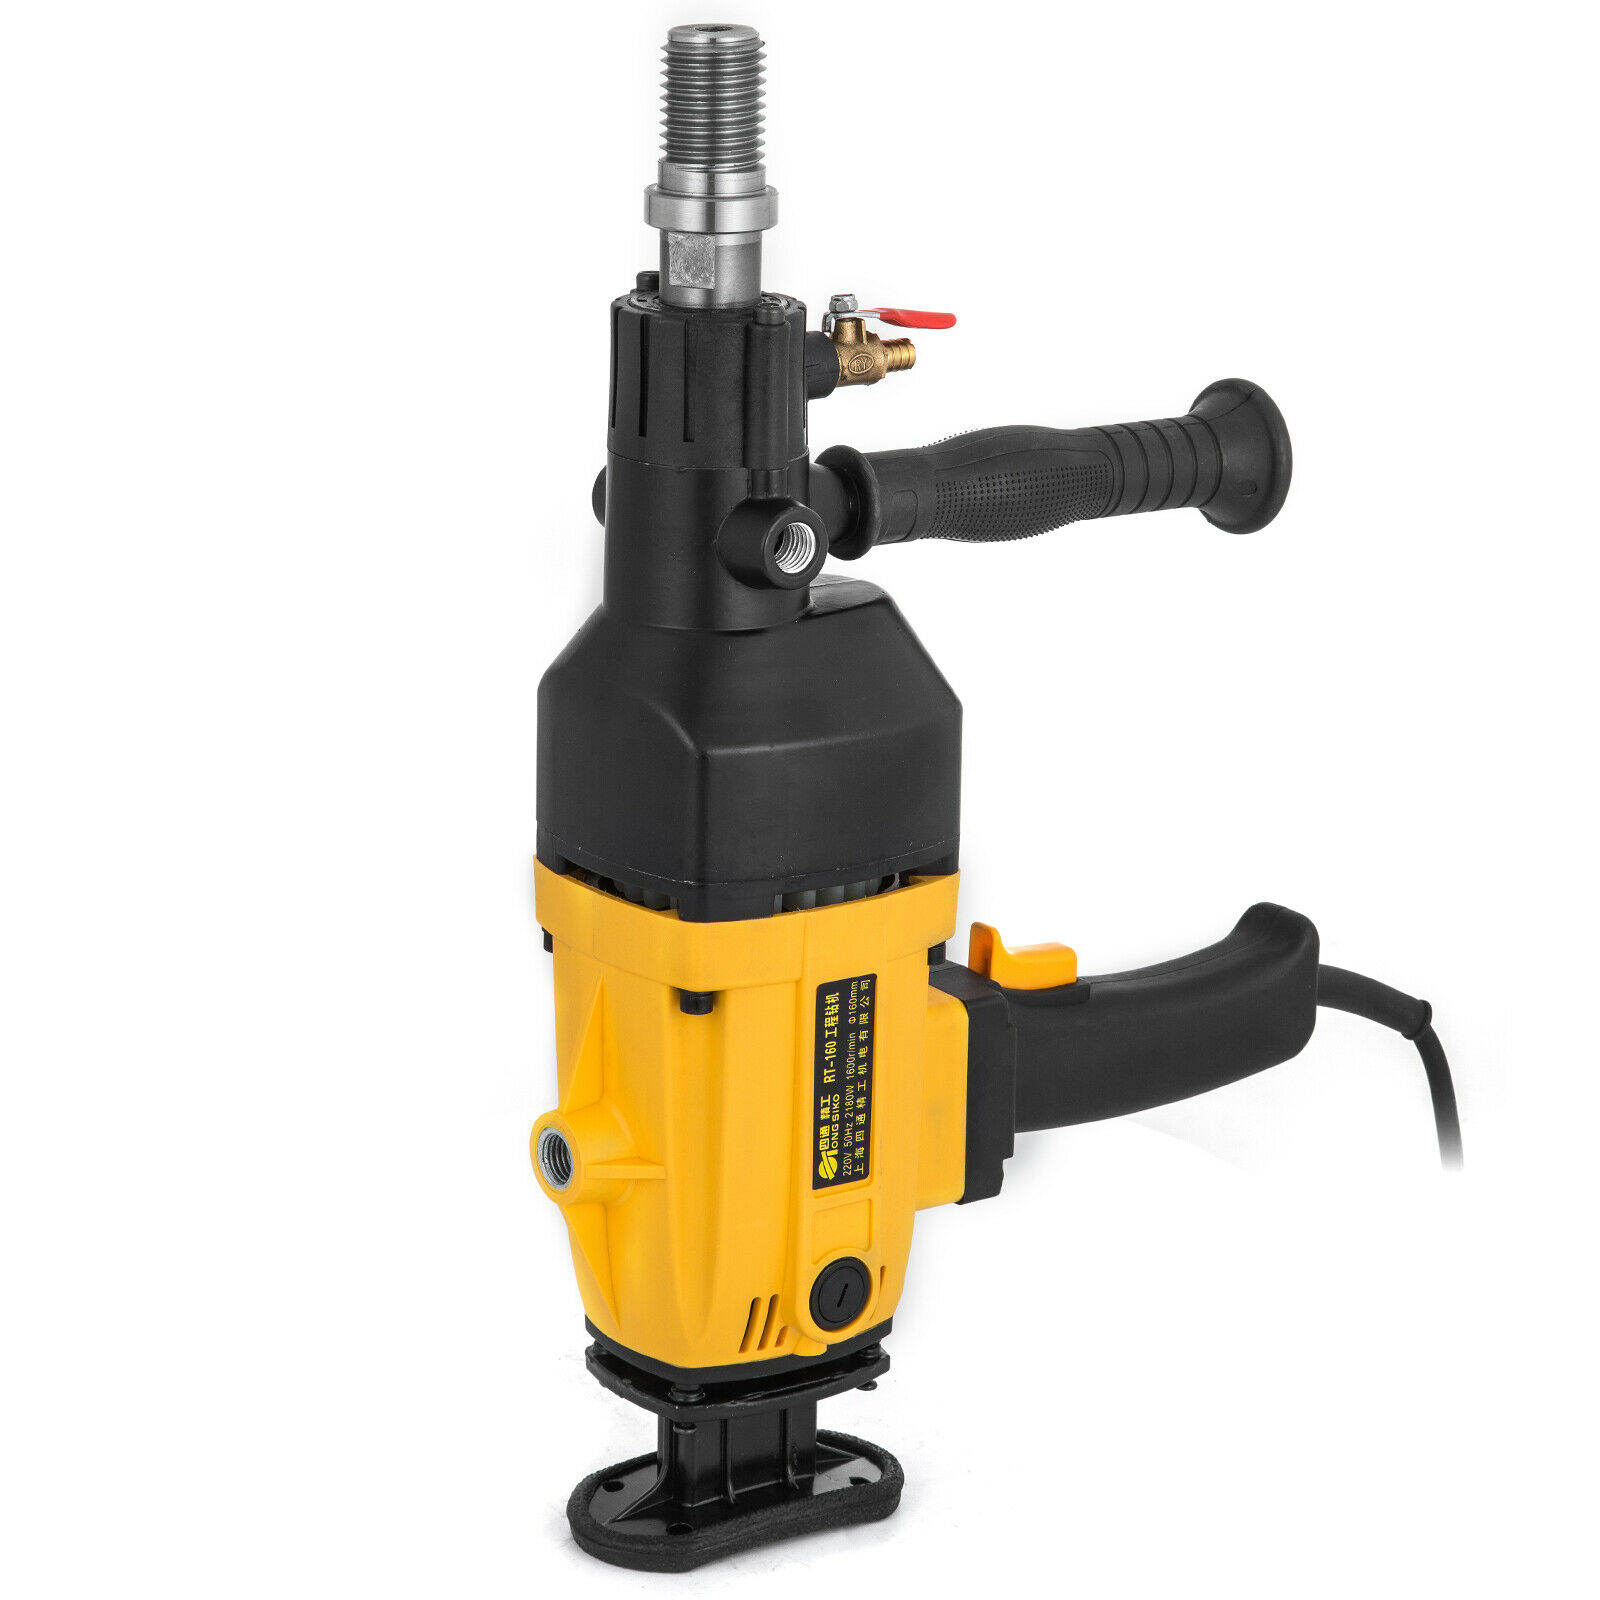 RT-160 Hand Held Wet//Dry Diamond Core Drill 2180W Concrete Core Drilling Machine